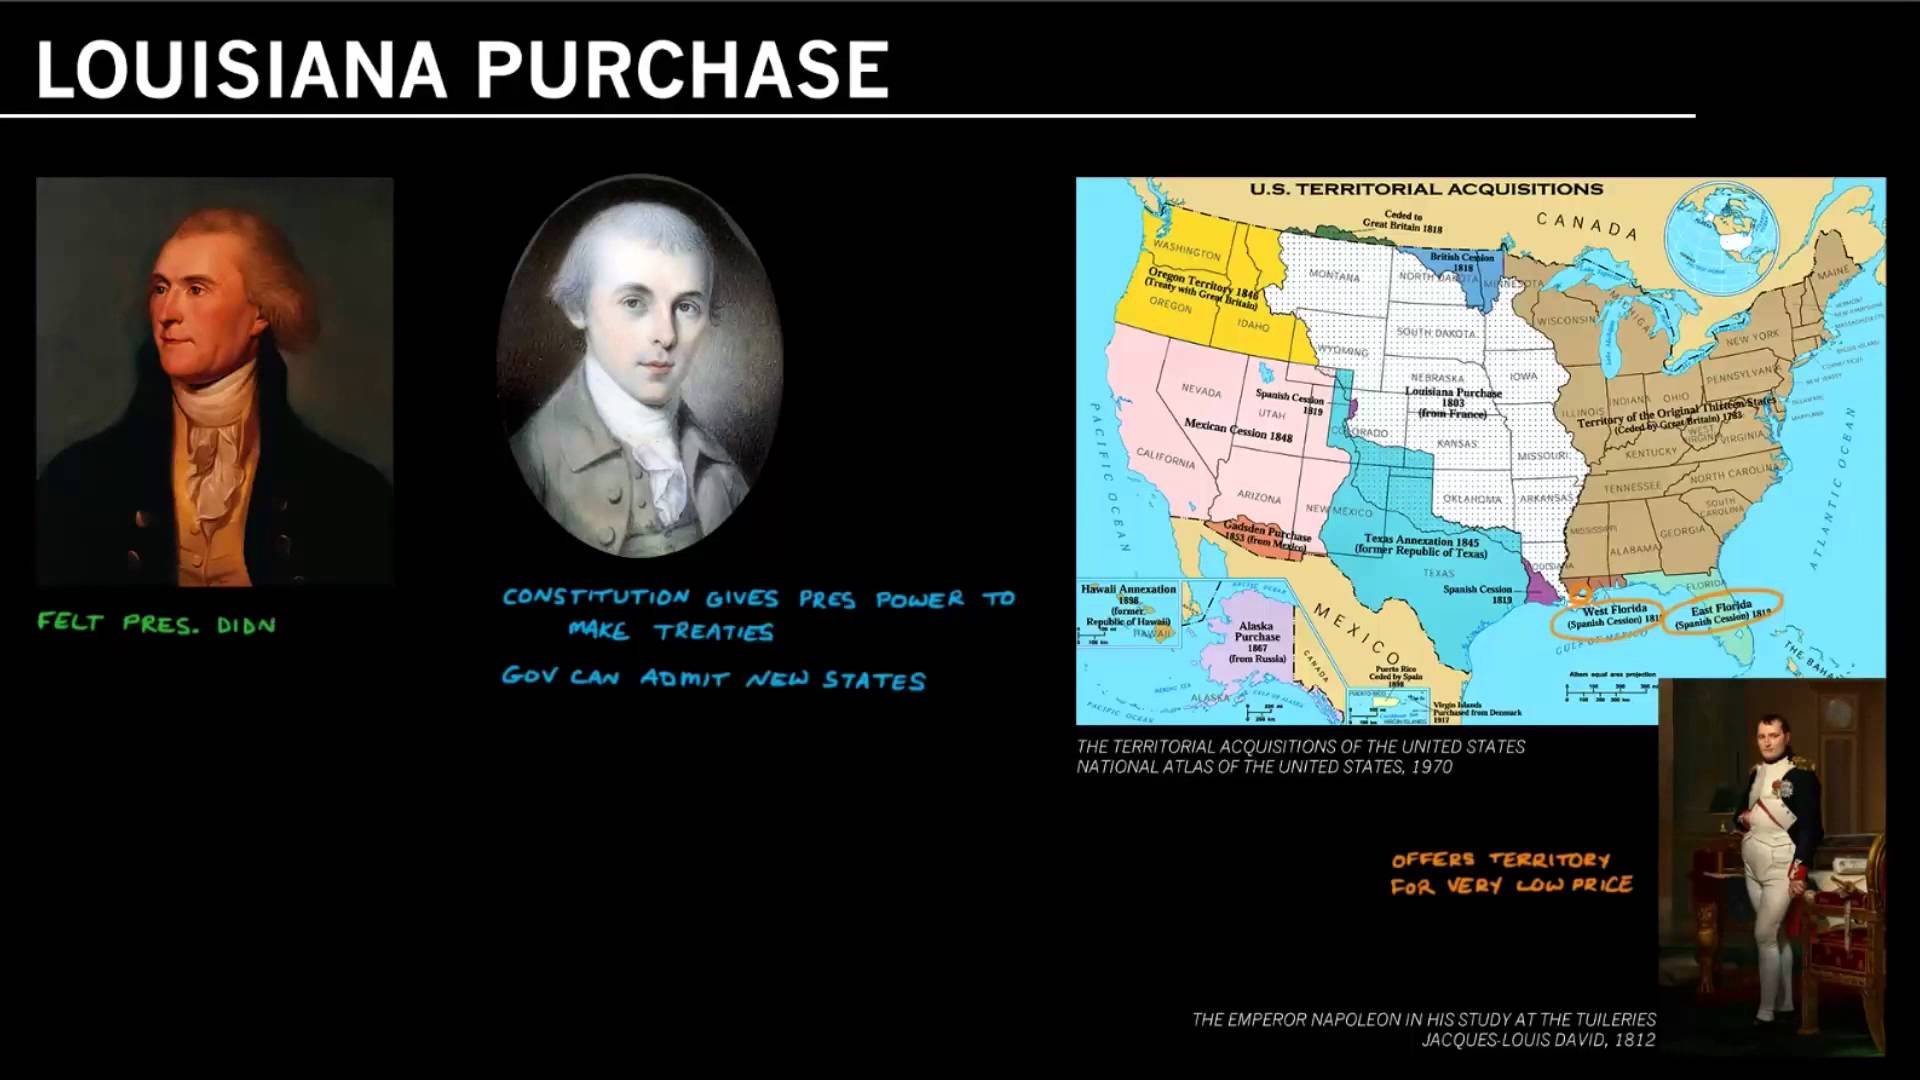 Louisiana Purchase - James Madison